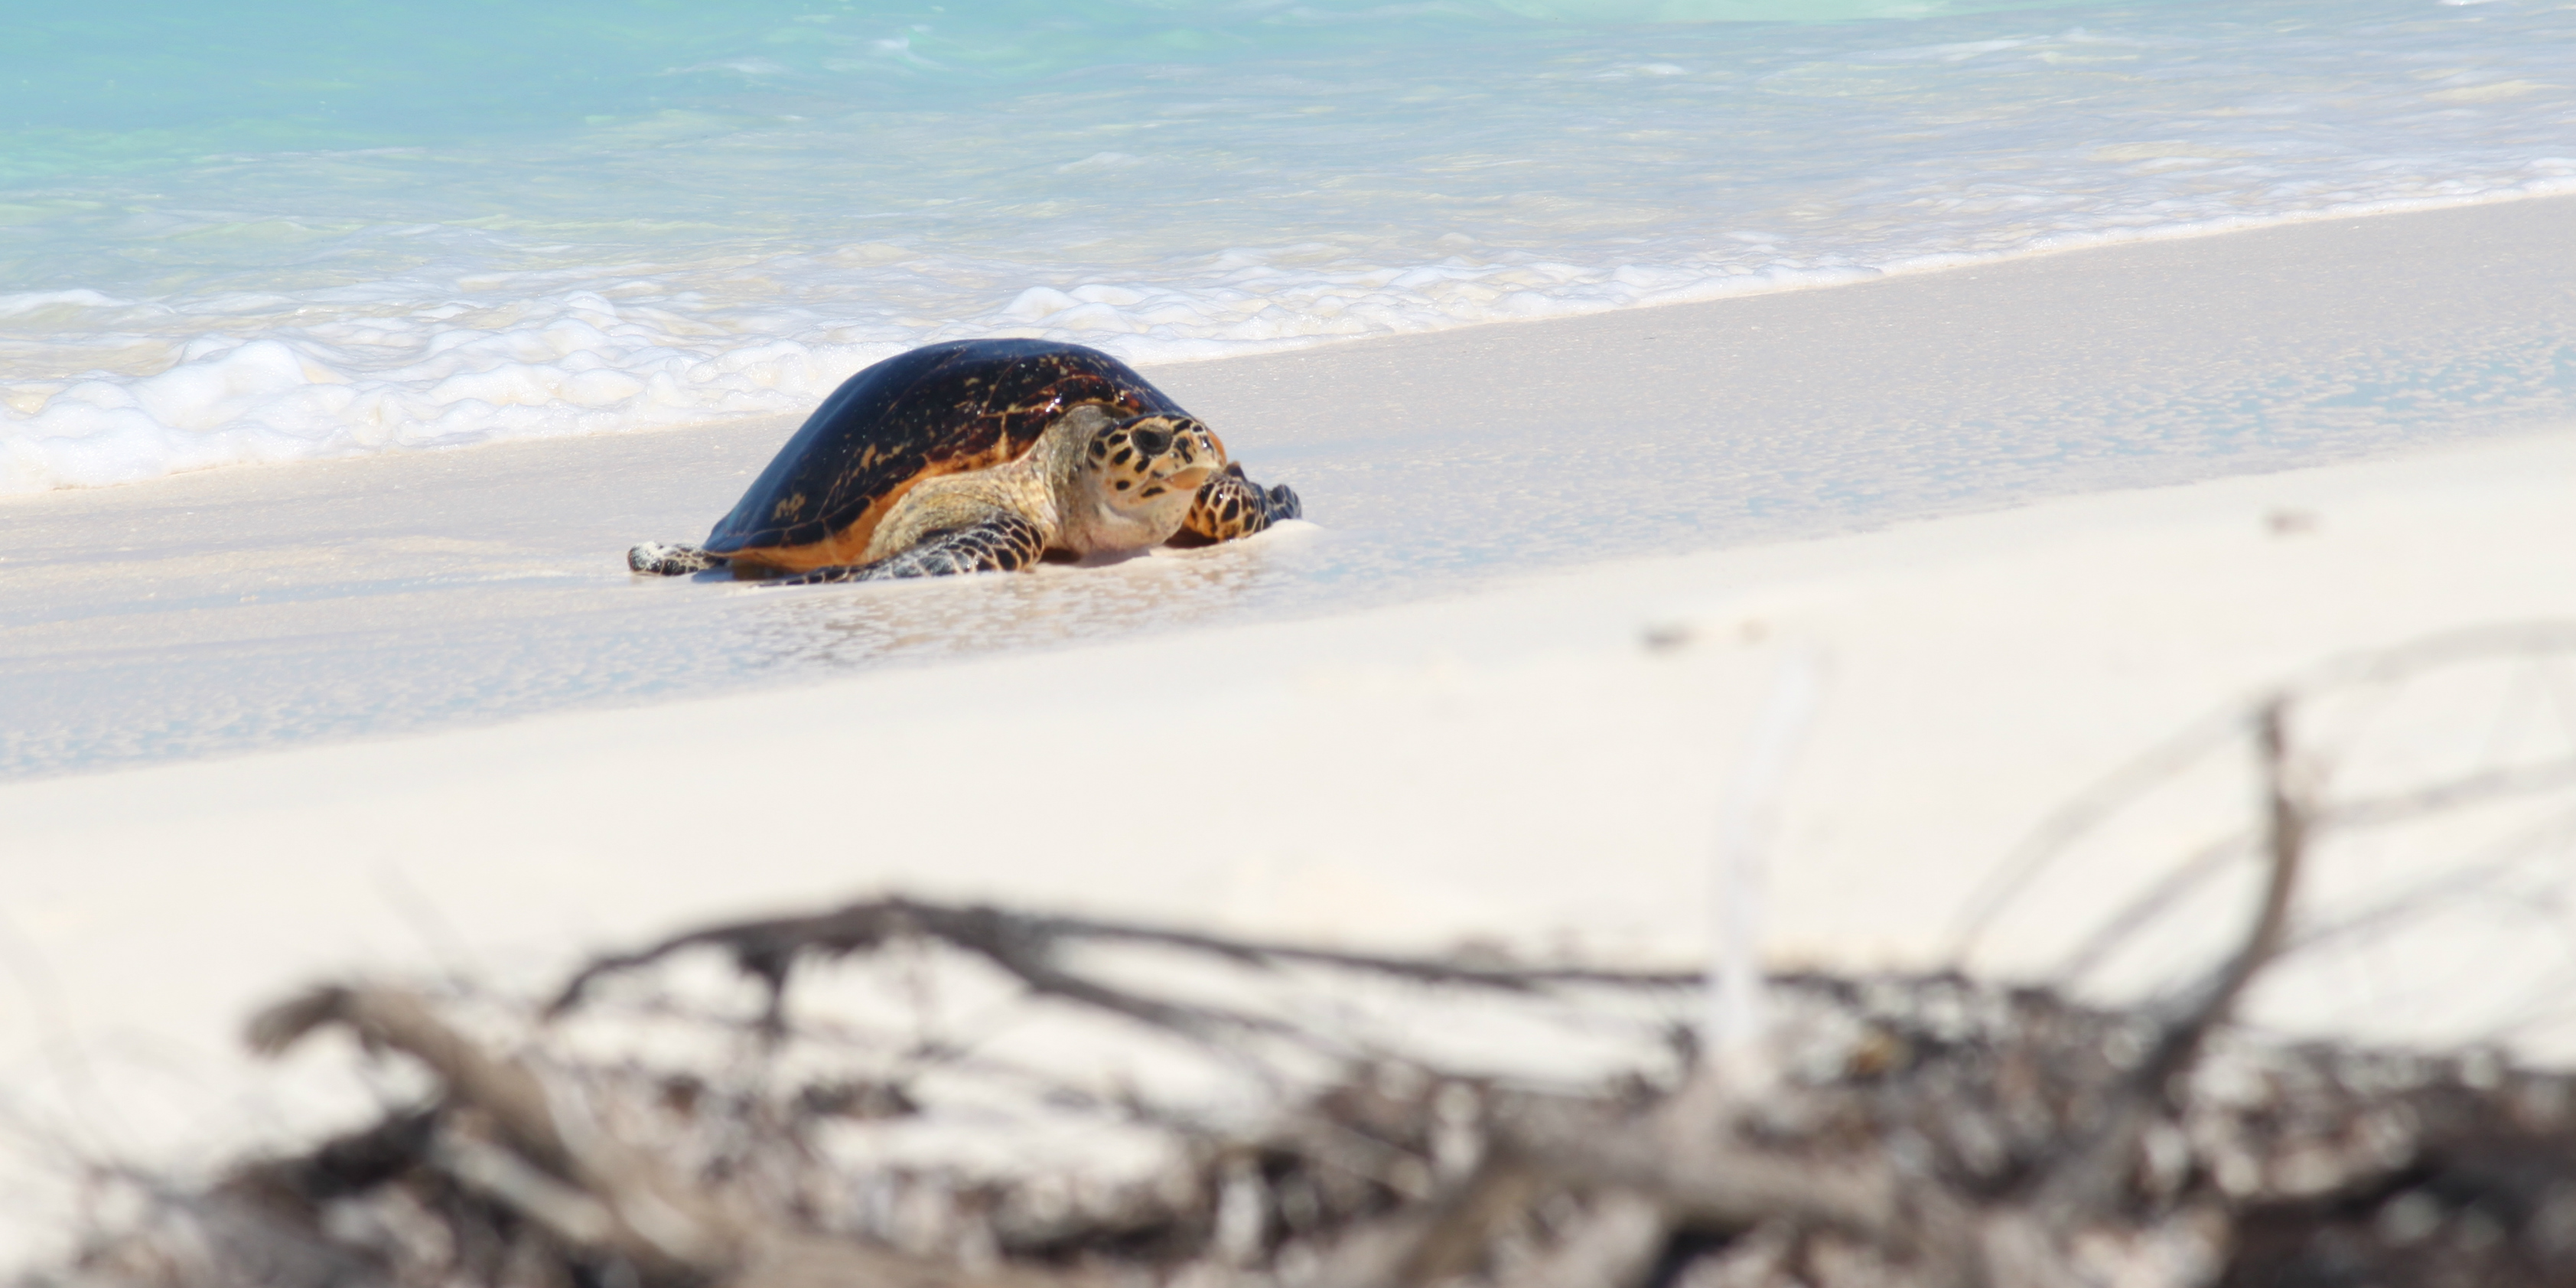 A hawksbill turtle on a beach in the Seychelles archipelago, where wildlife conservation efforts focus on returning balance to nature.